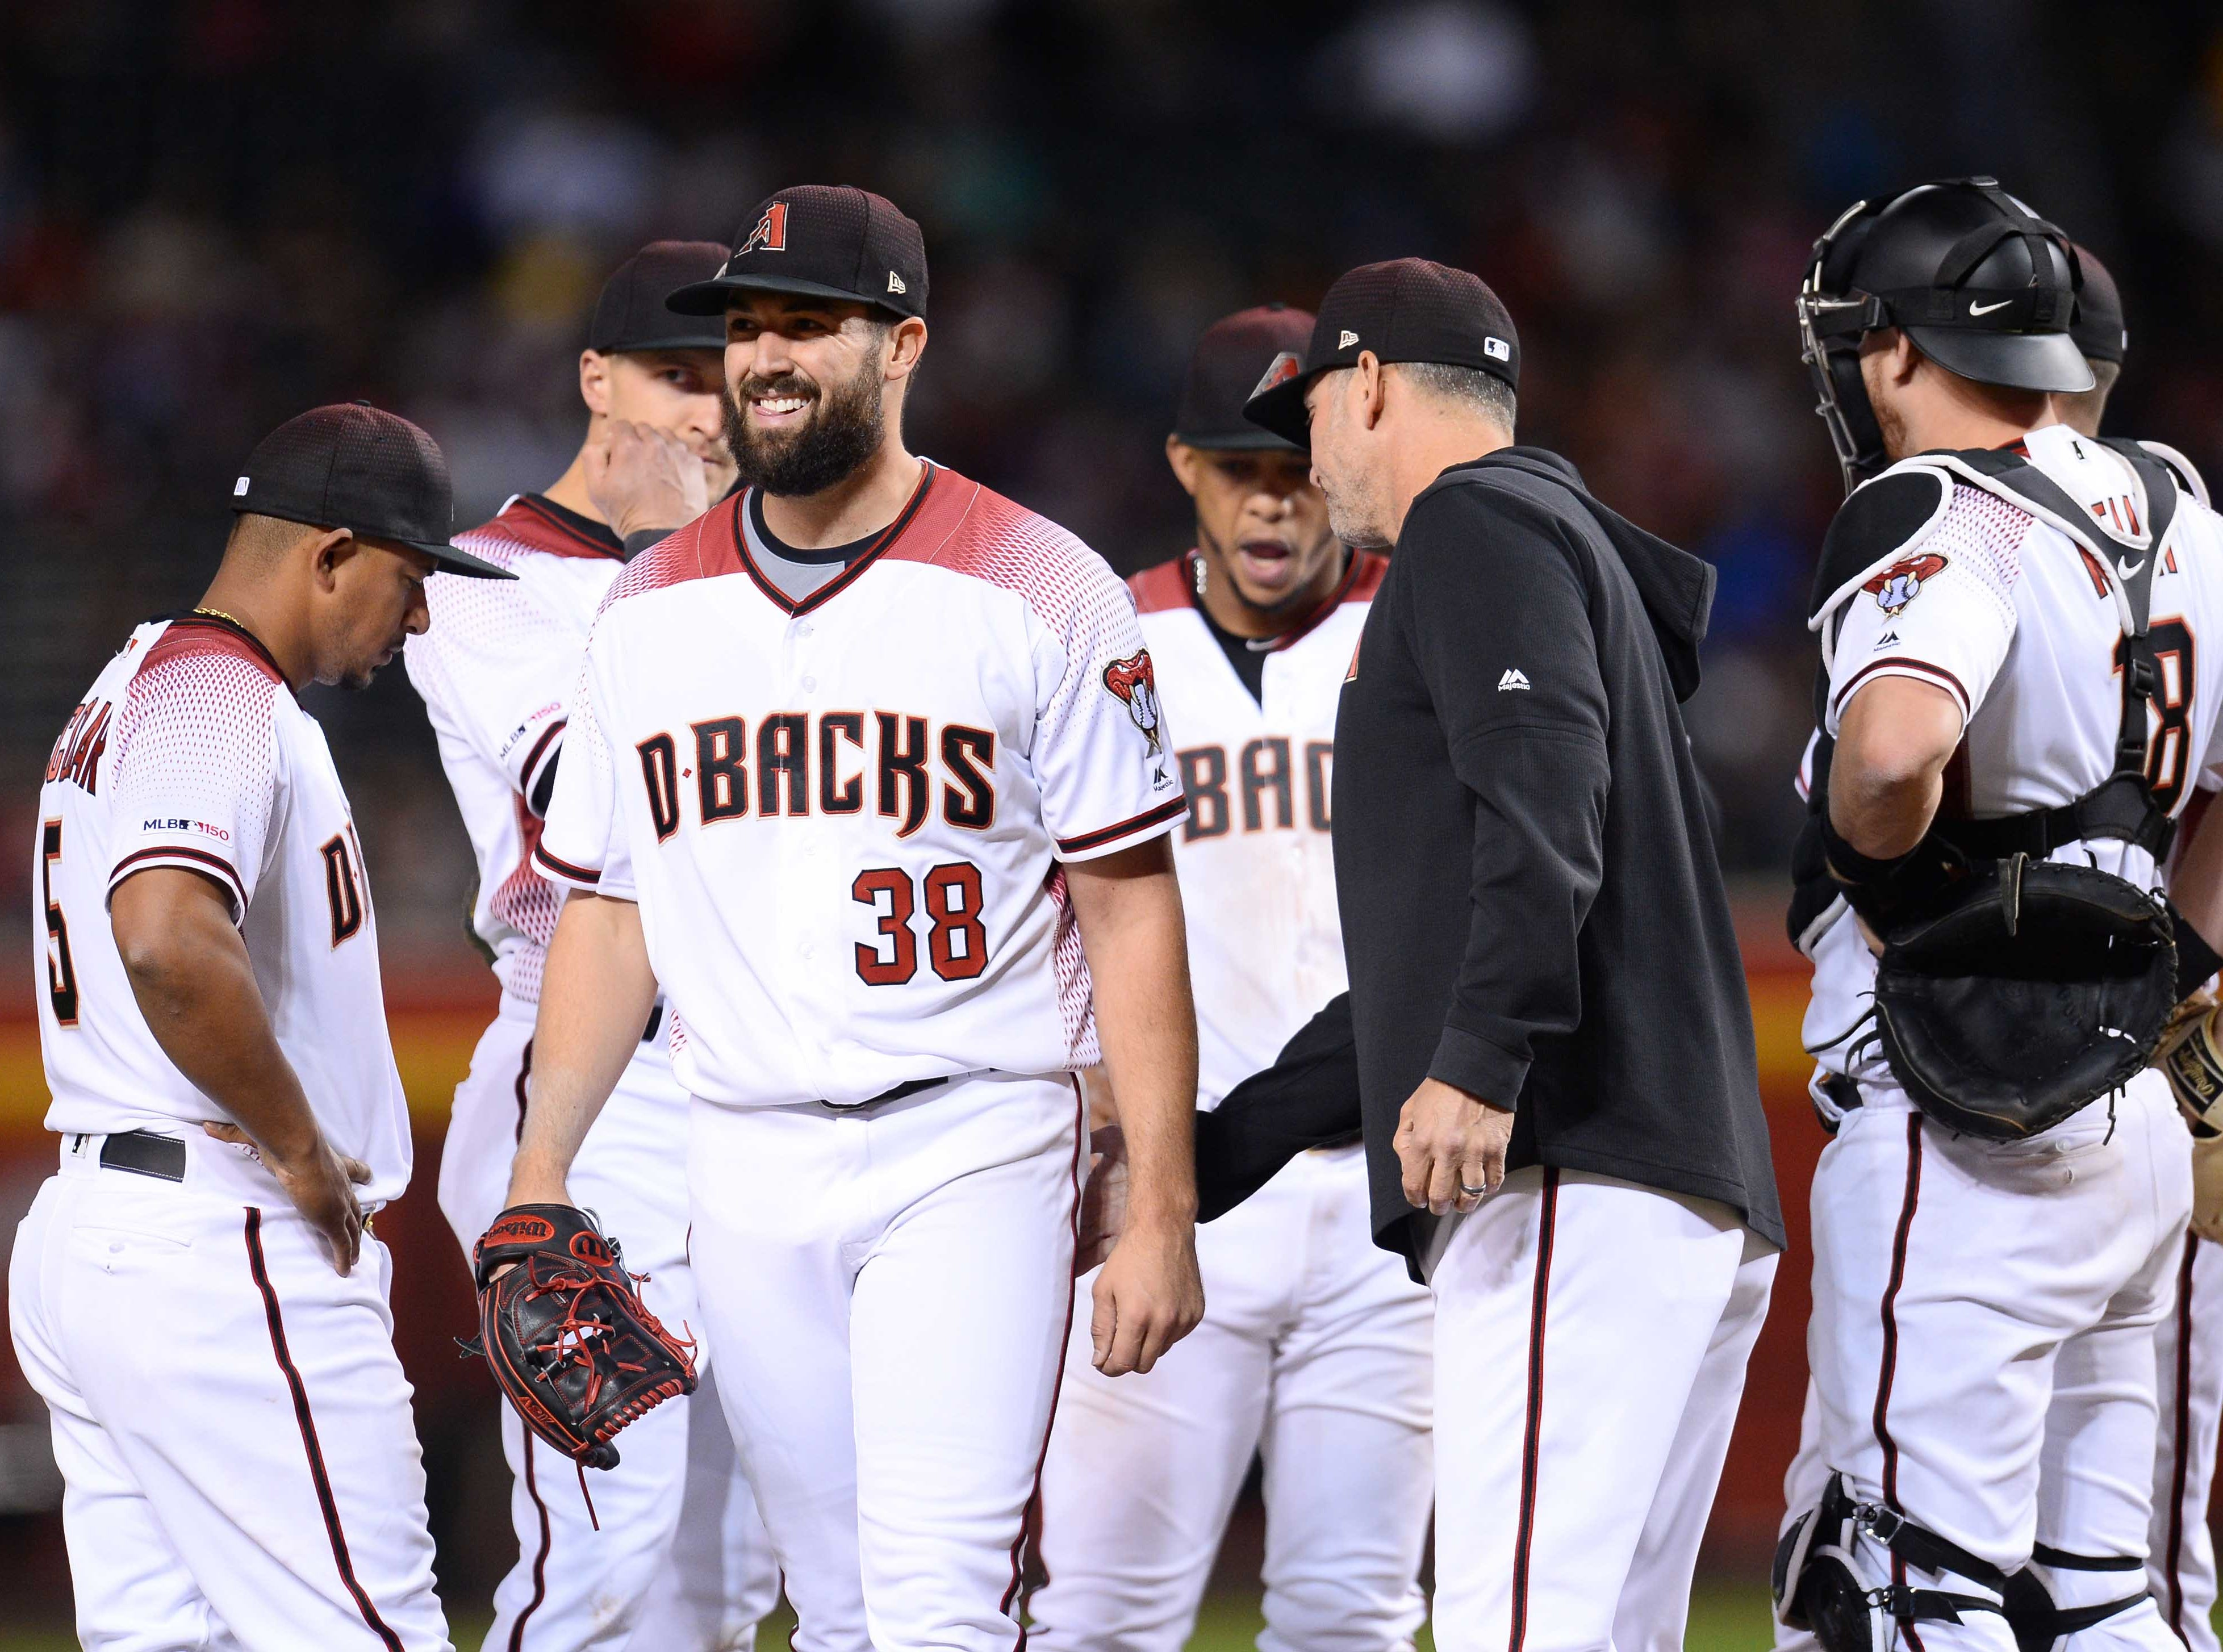 Apr 10, 2019; Phoenix, AZ, USA; Arizona Diamondbacks starting pitcher Robbie Ray (38) leaves the game against the Texas Rangers during the sixth inning at Chase Field. Mandatory Credit: Joe Camporeale-USA TODAY Sports